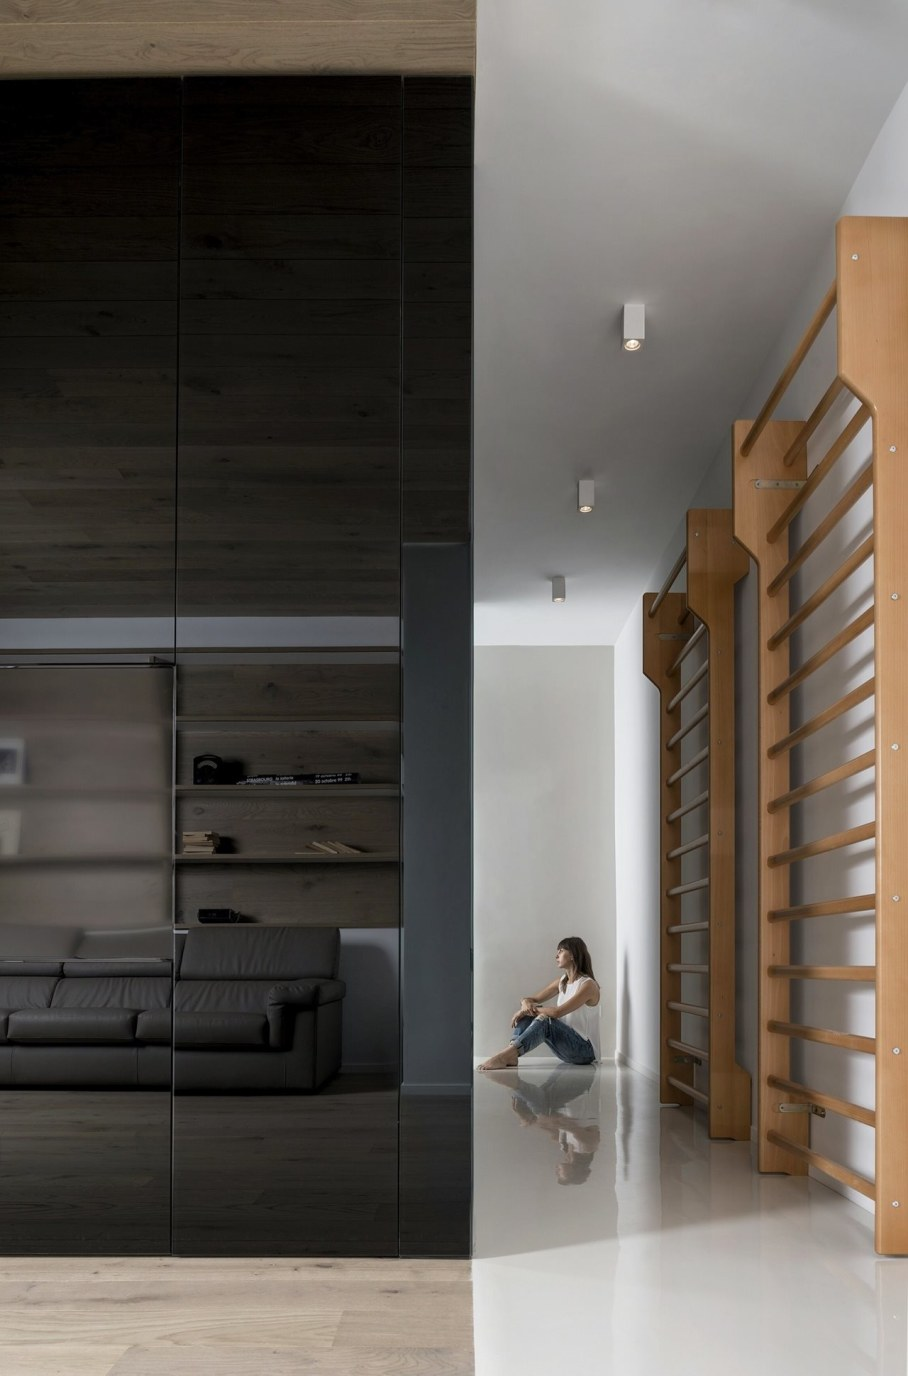 Cube House by Noses Architects studio 3